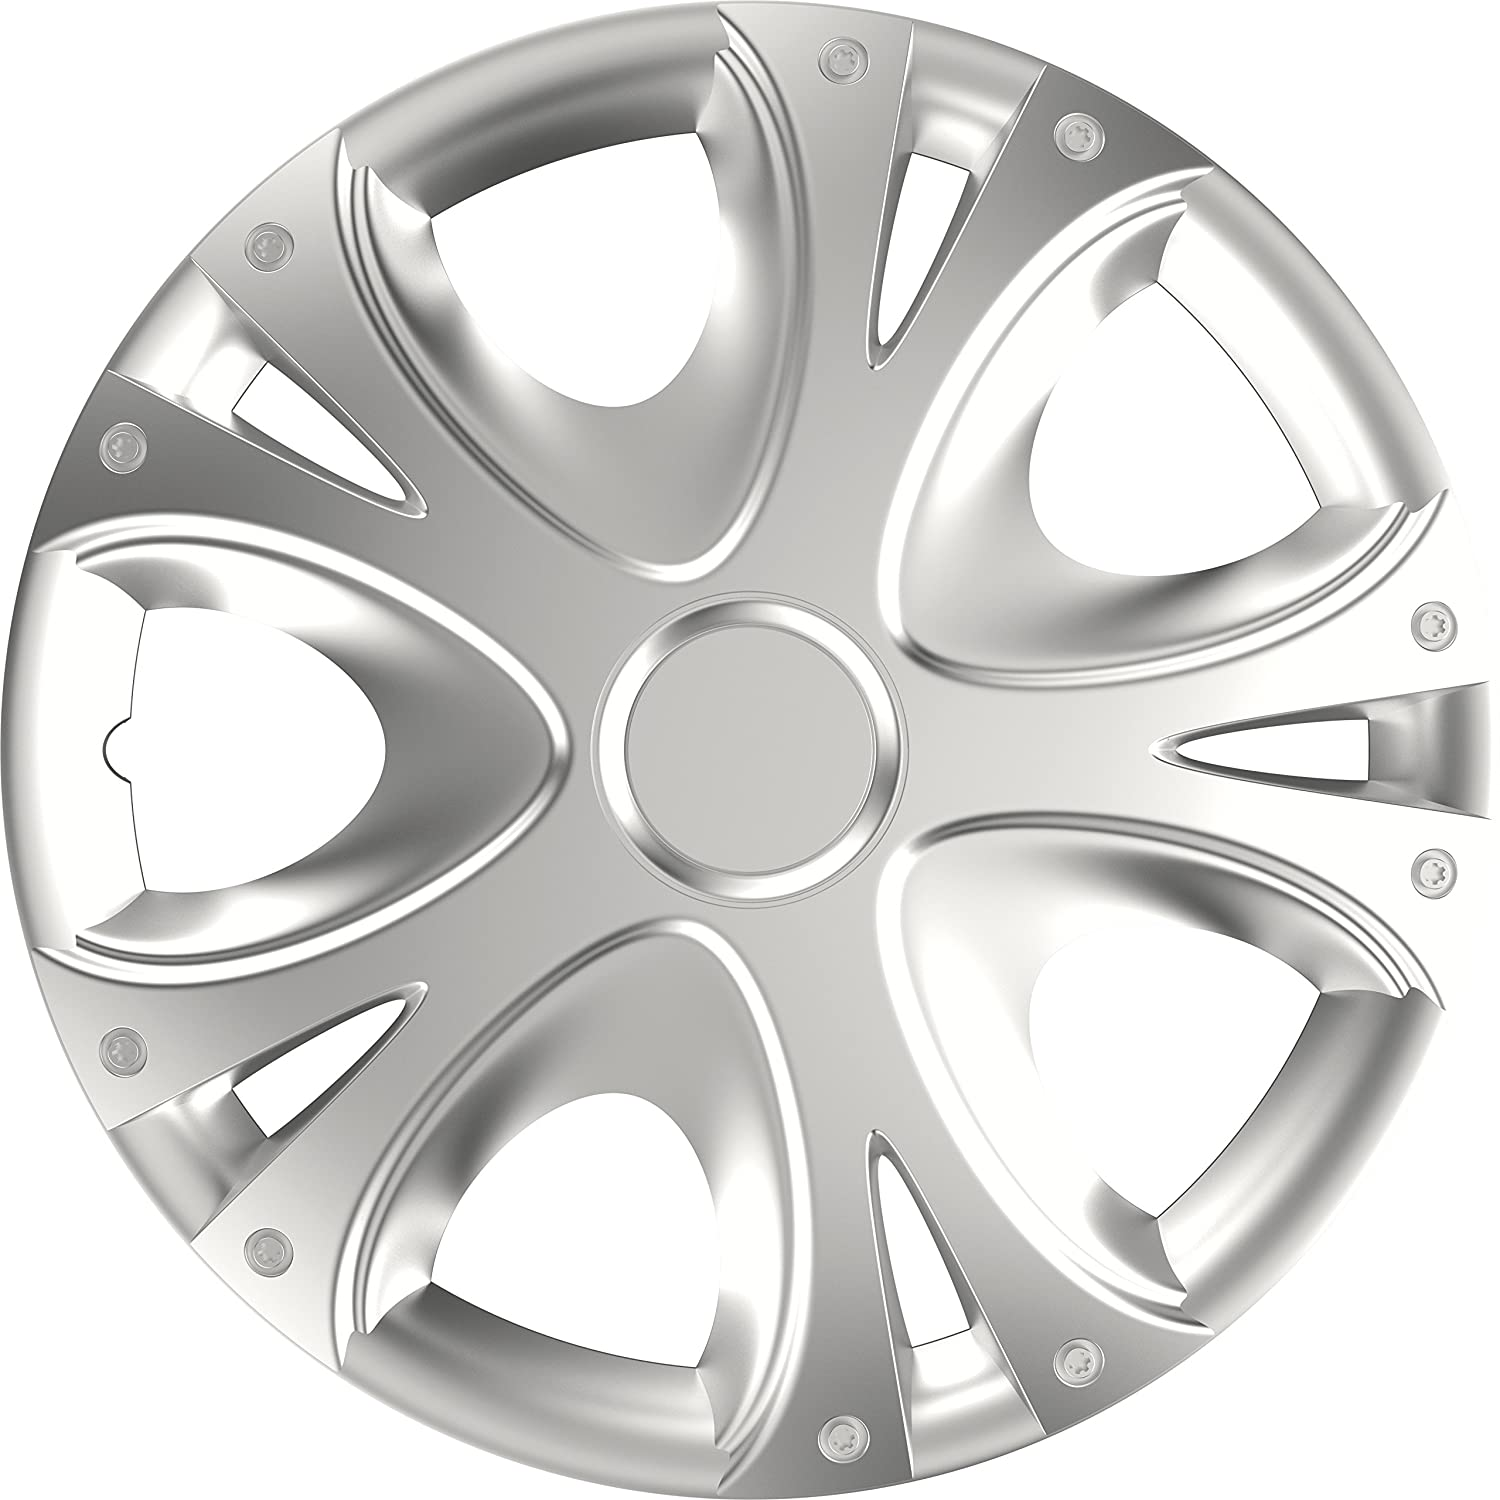 Versaco RAPIDENCBS15 Wheel Trims Universal Fit for Cars and Other Vehicles 15 Inch Rapide Silver Black